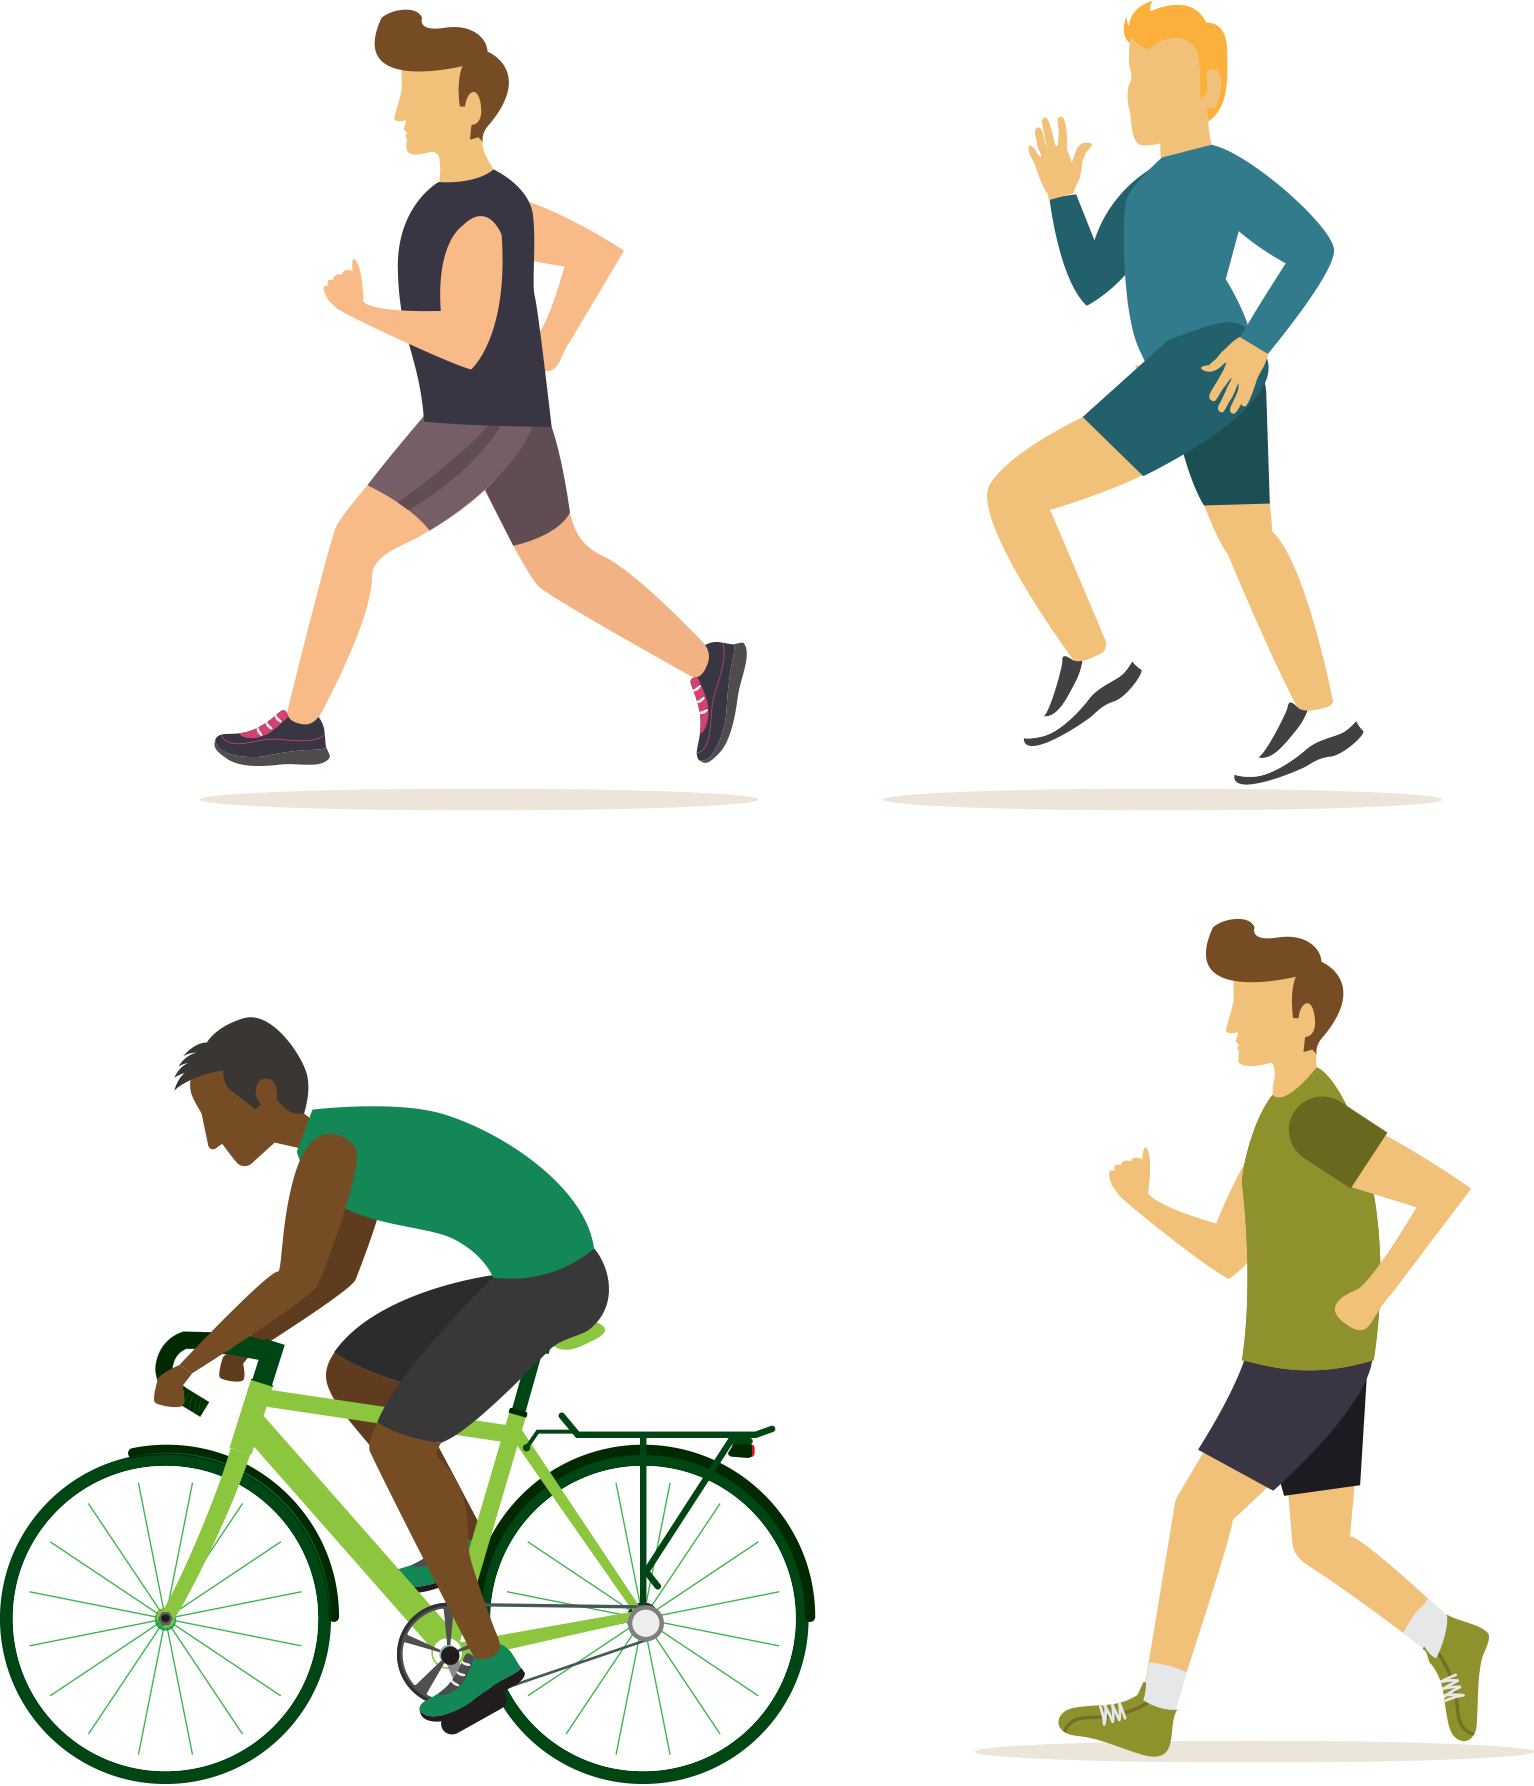 Exercising clipart physical play. Exercise fitness stretching walking